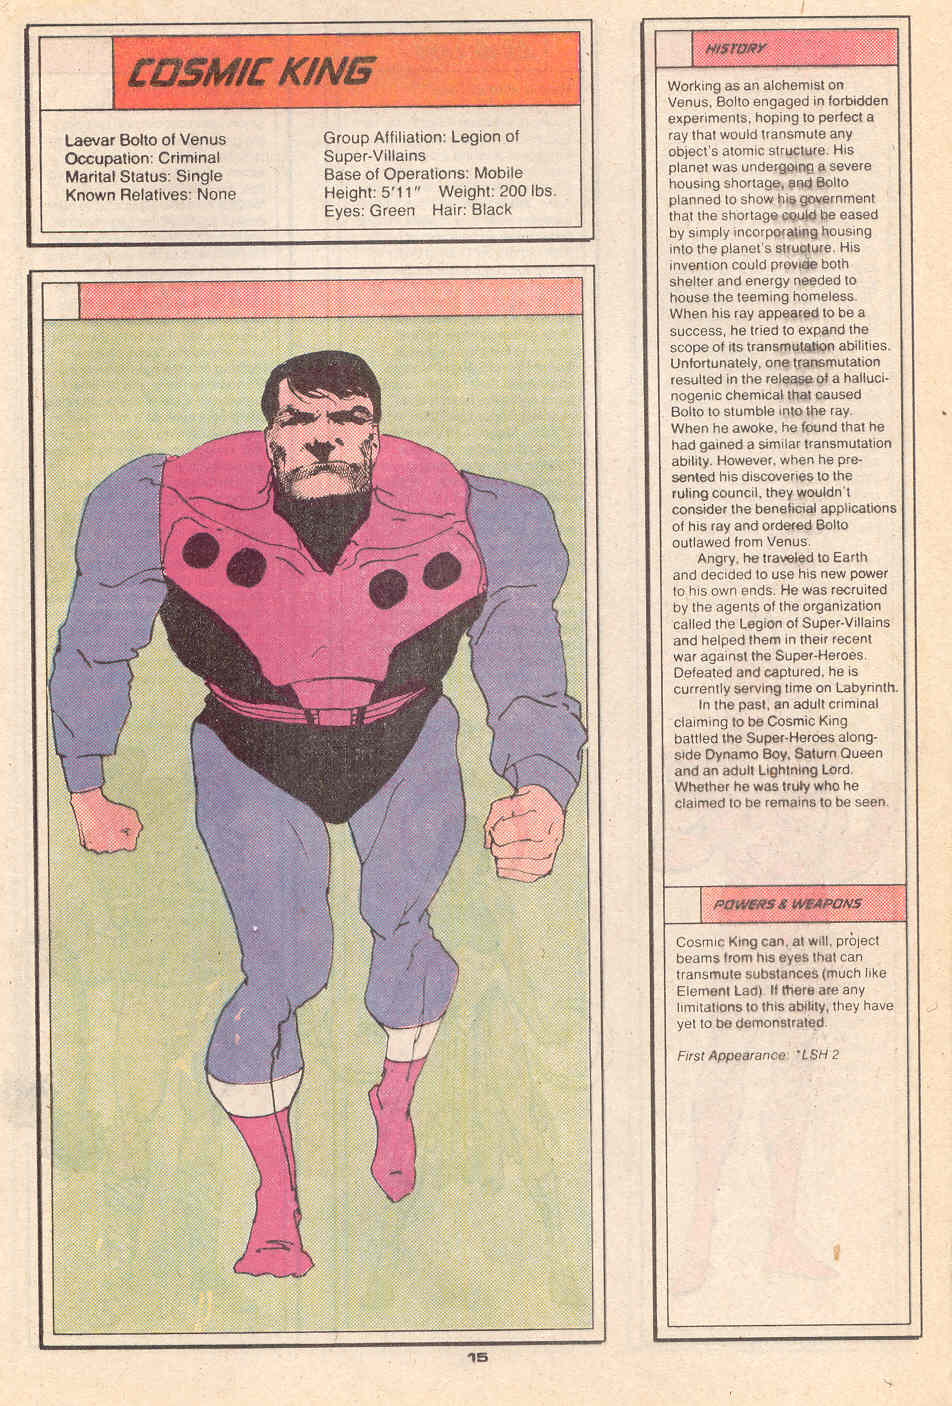 Cosmic King by Kyle Baker - Who's Who in the Legion of Super-Heroes #4